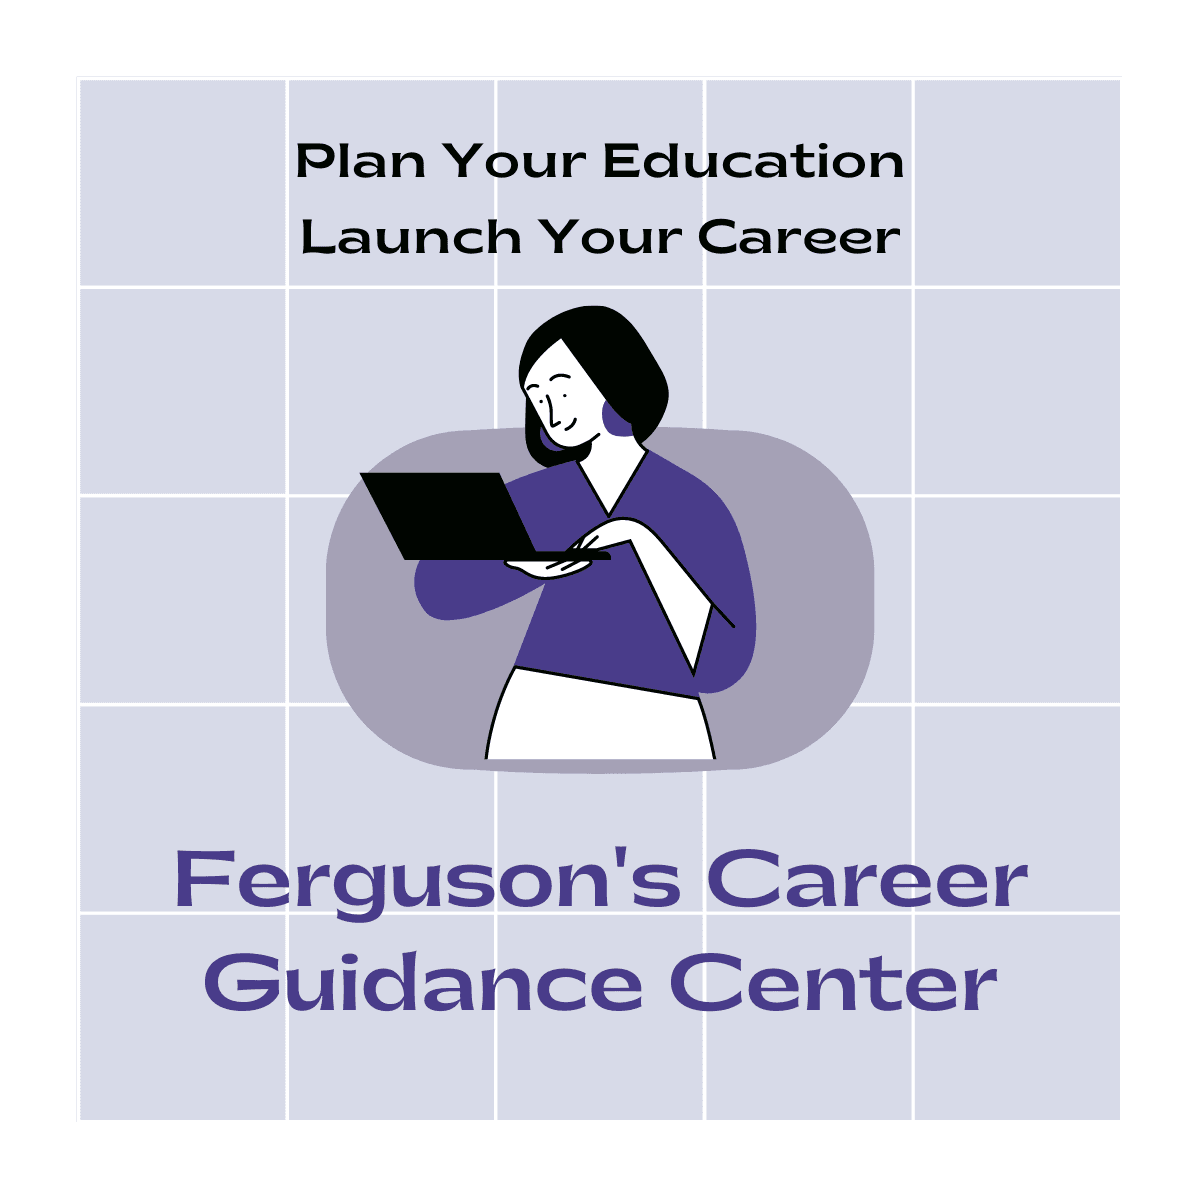 Fergusons Career Guidance Center